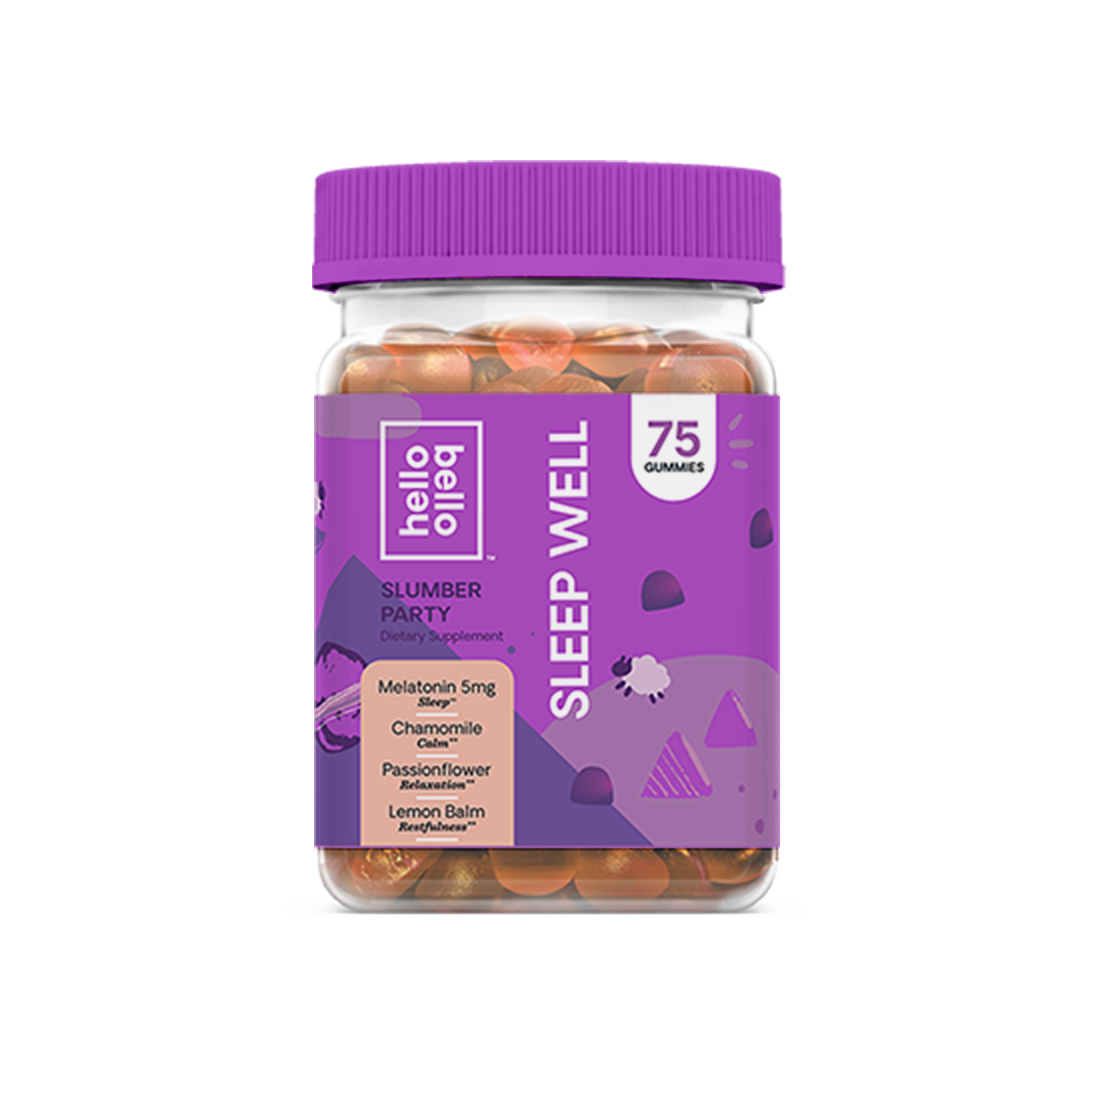 Sleep Well Gummy Vitamins Vegan Hello Bello Gummy Vitamins